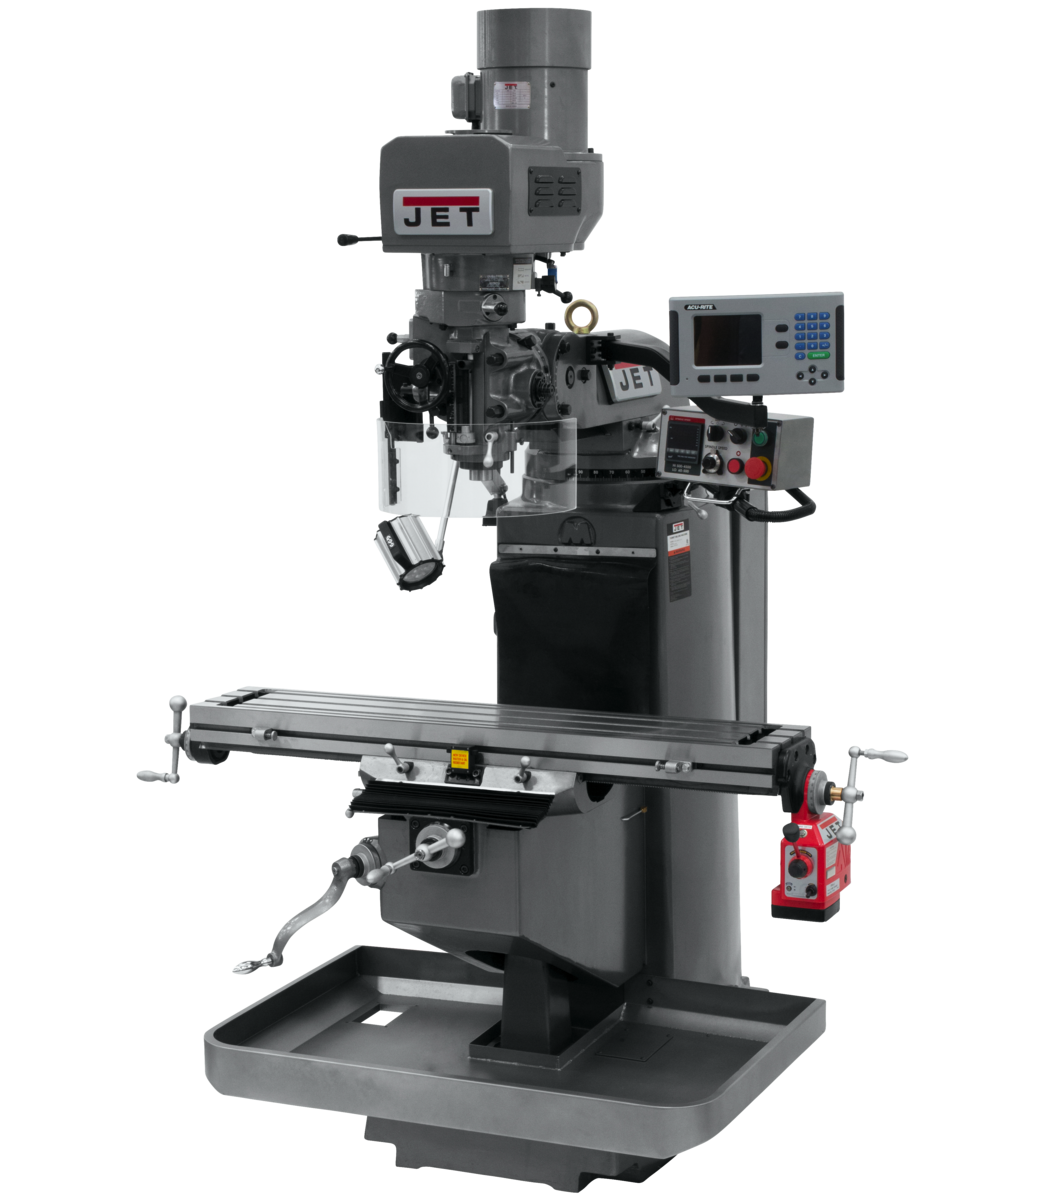 JTM-949EVS Mill With 3-Axis Acu-Rite 203 DRO (Knee) With X-Axis Powerfeed